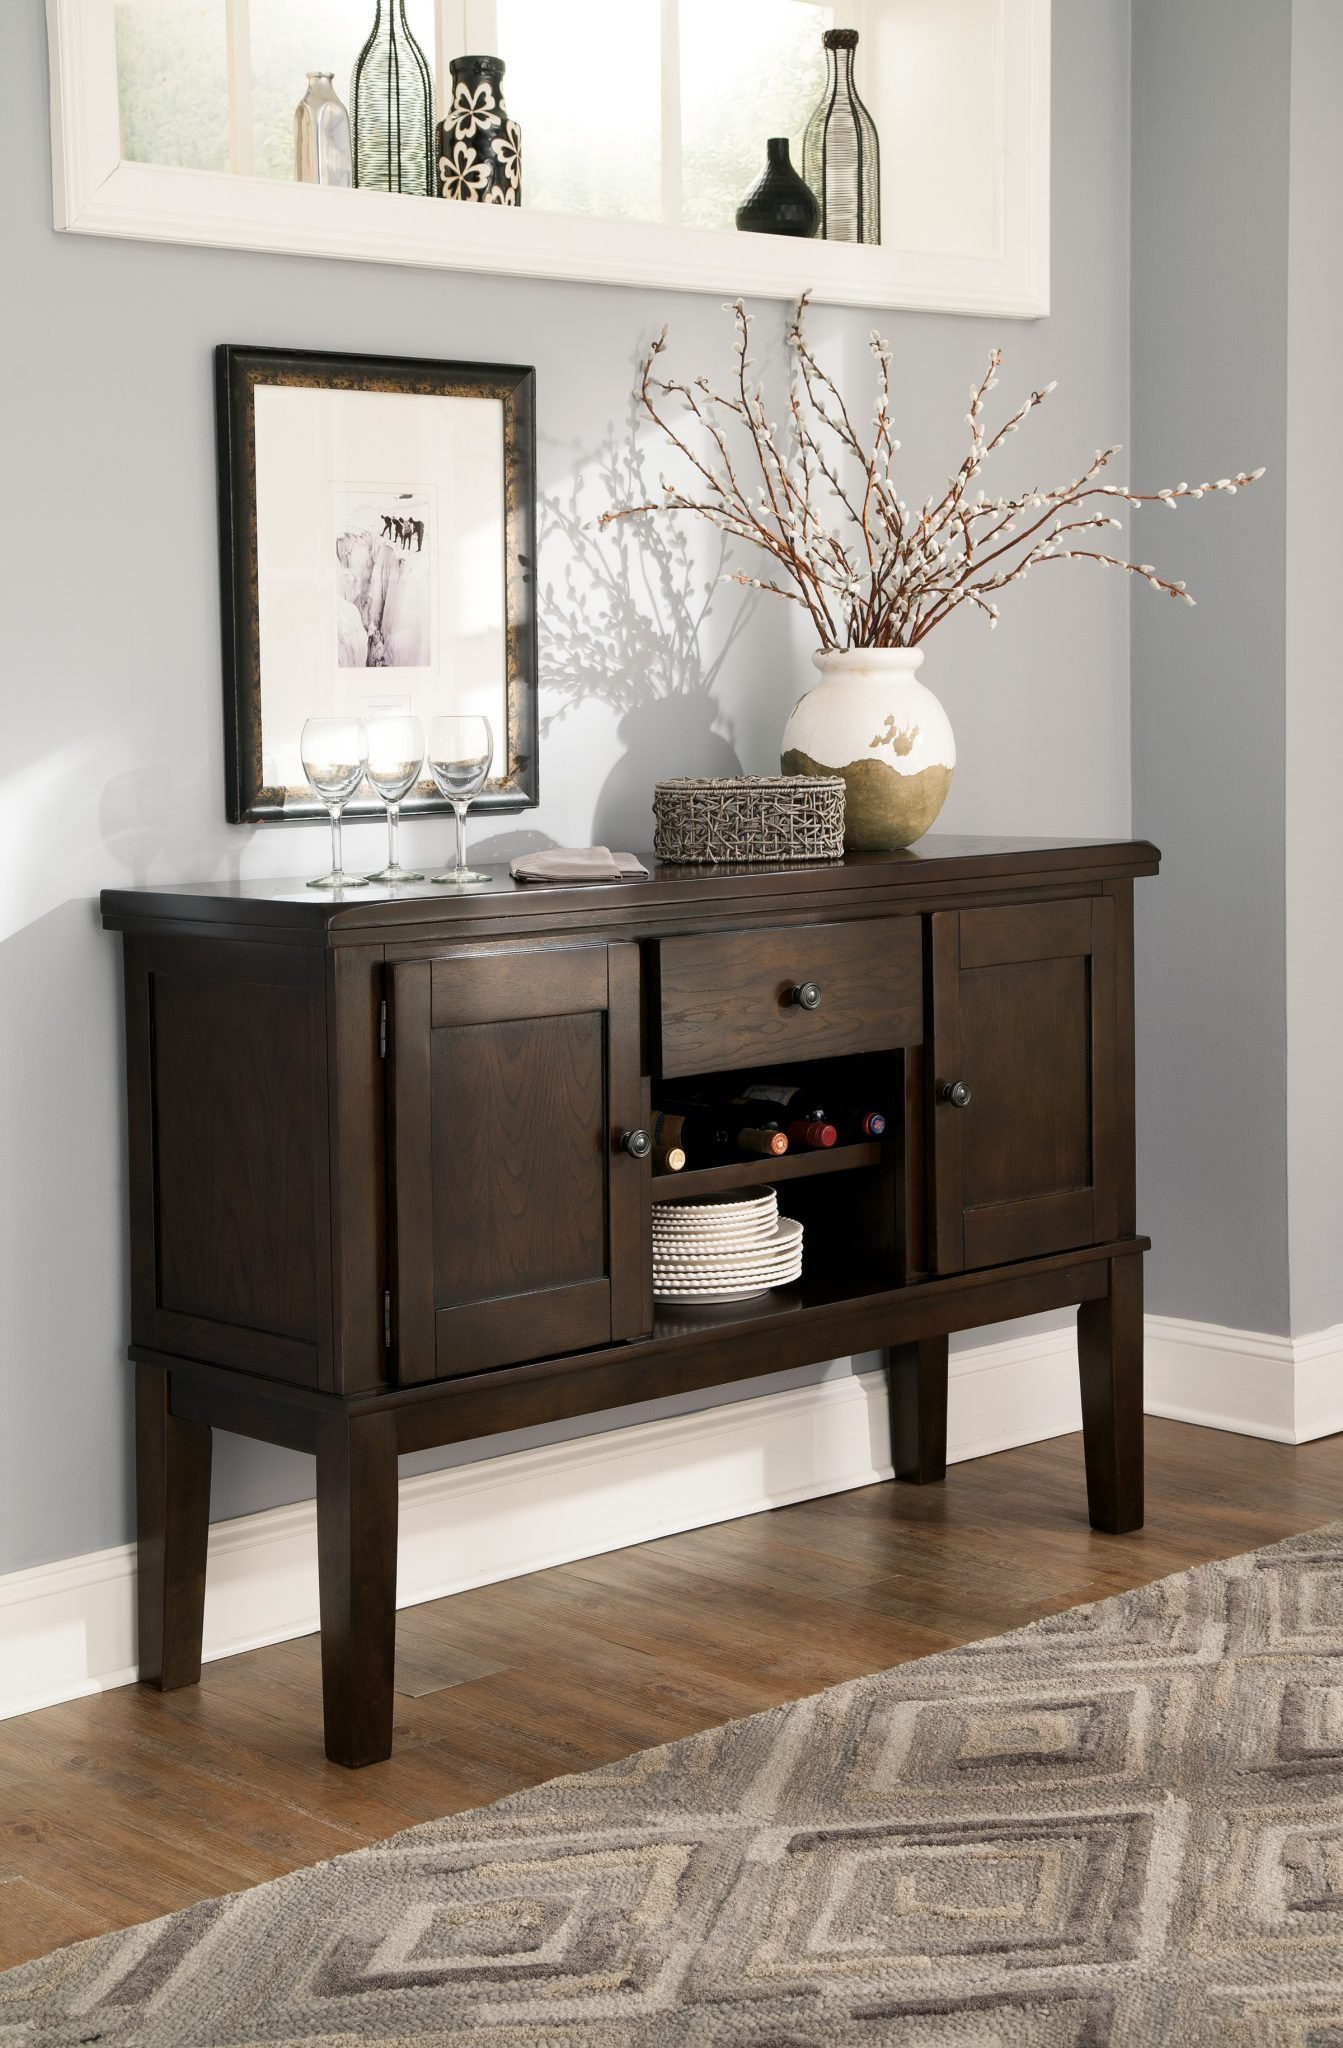 Best ideas about Dining Room Server . Save or Pin Ashley D596 Haddigan Dining Room Server Now.